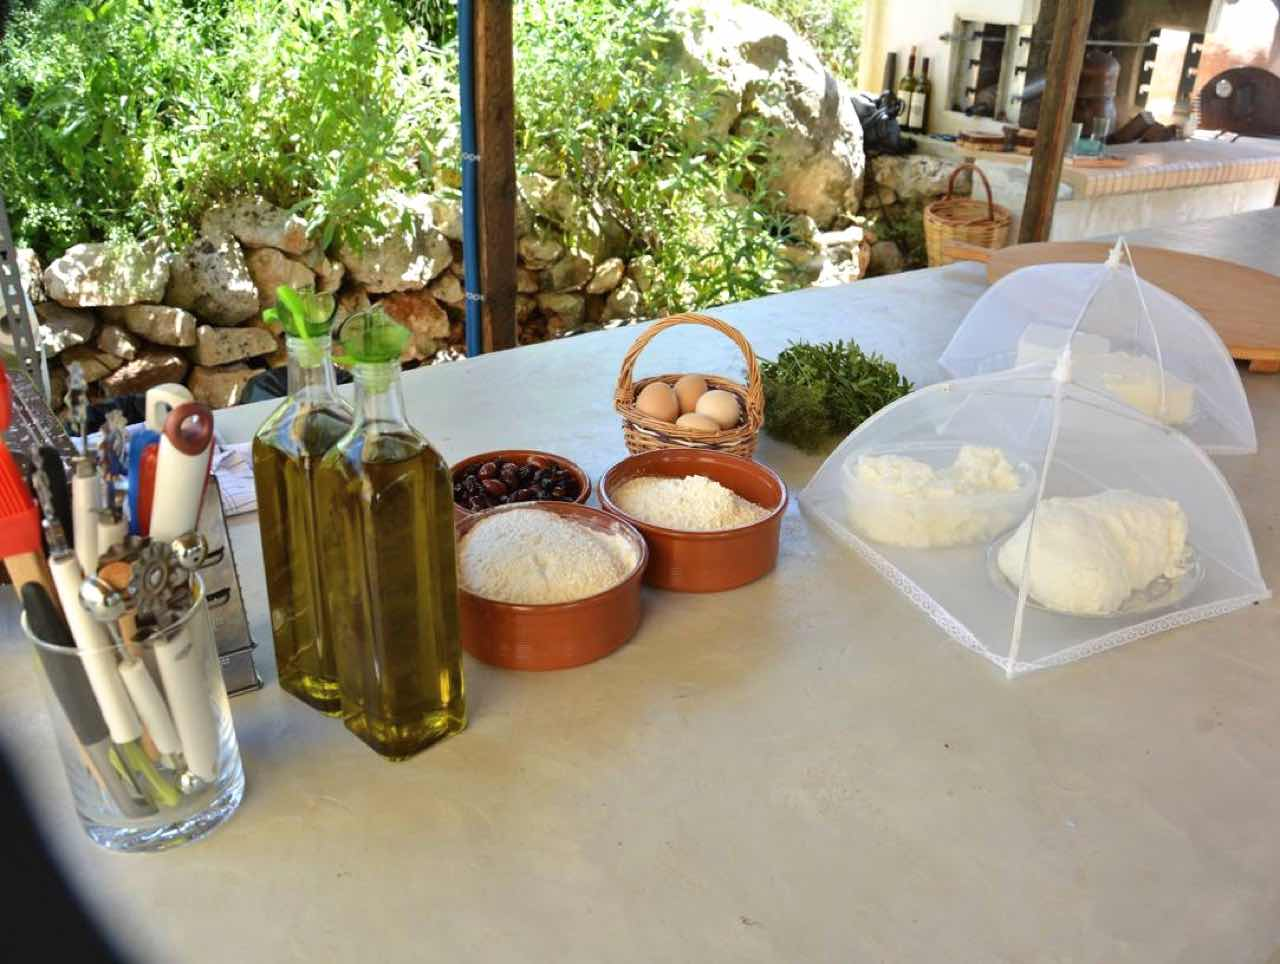 Artisan Cheese Workshop and Tasting in Chania Crete, making artisan cretan cheese, artisan crete cheese workshop, best activities in chania crete